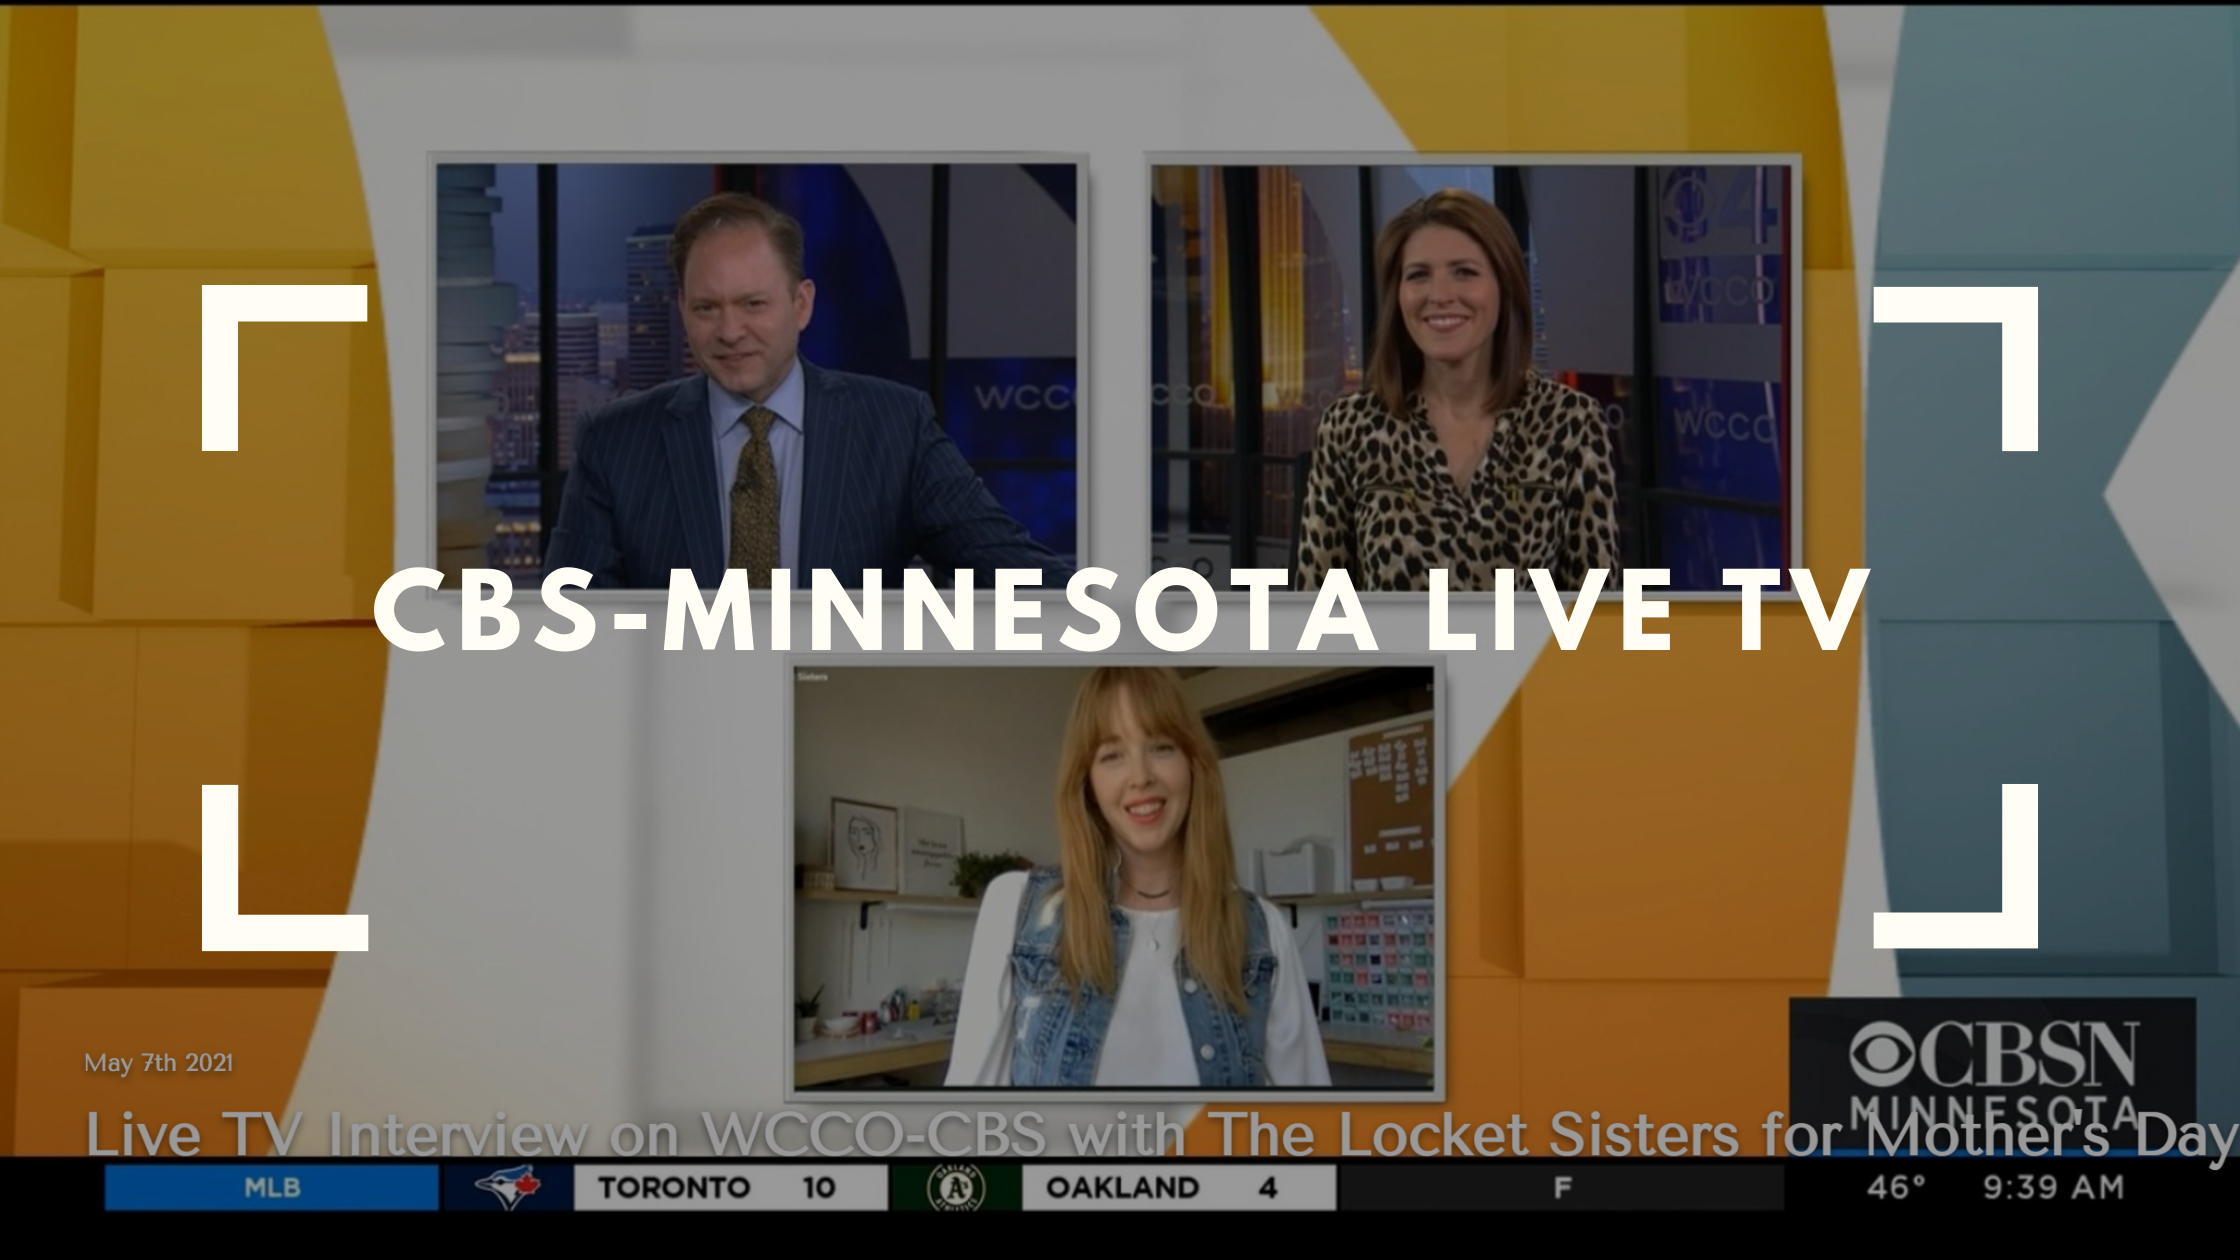 live tv interview on cbs-wcco minnesota for mother's day gifts with the locket sisters